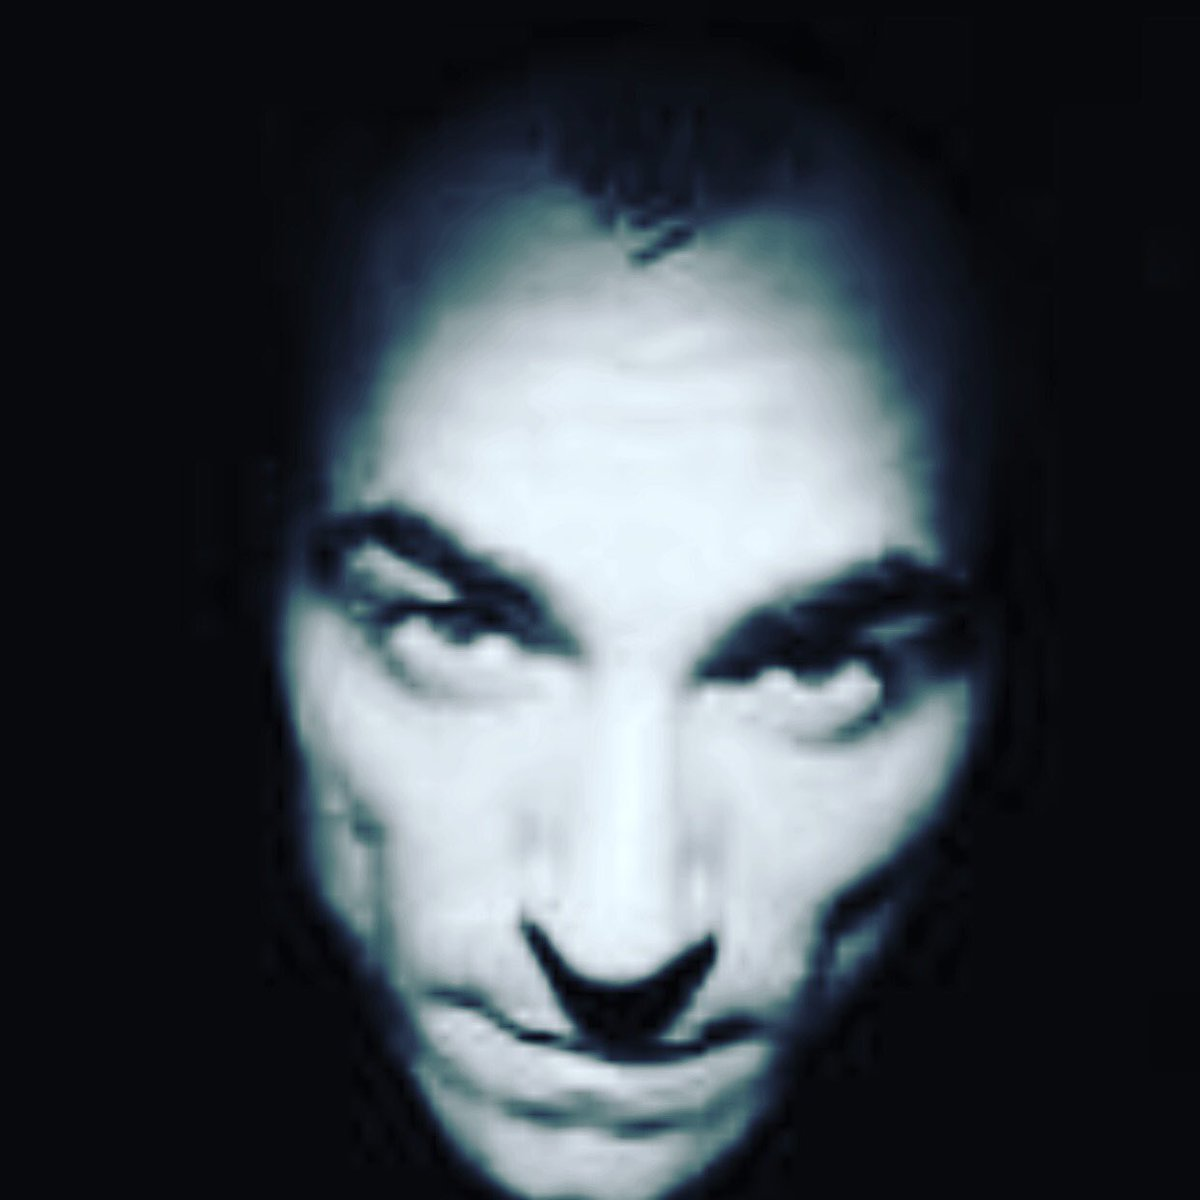 Sad to hear Robert Miles passing r.i.p thanks for the music